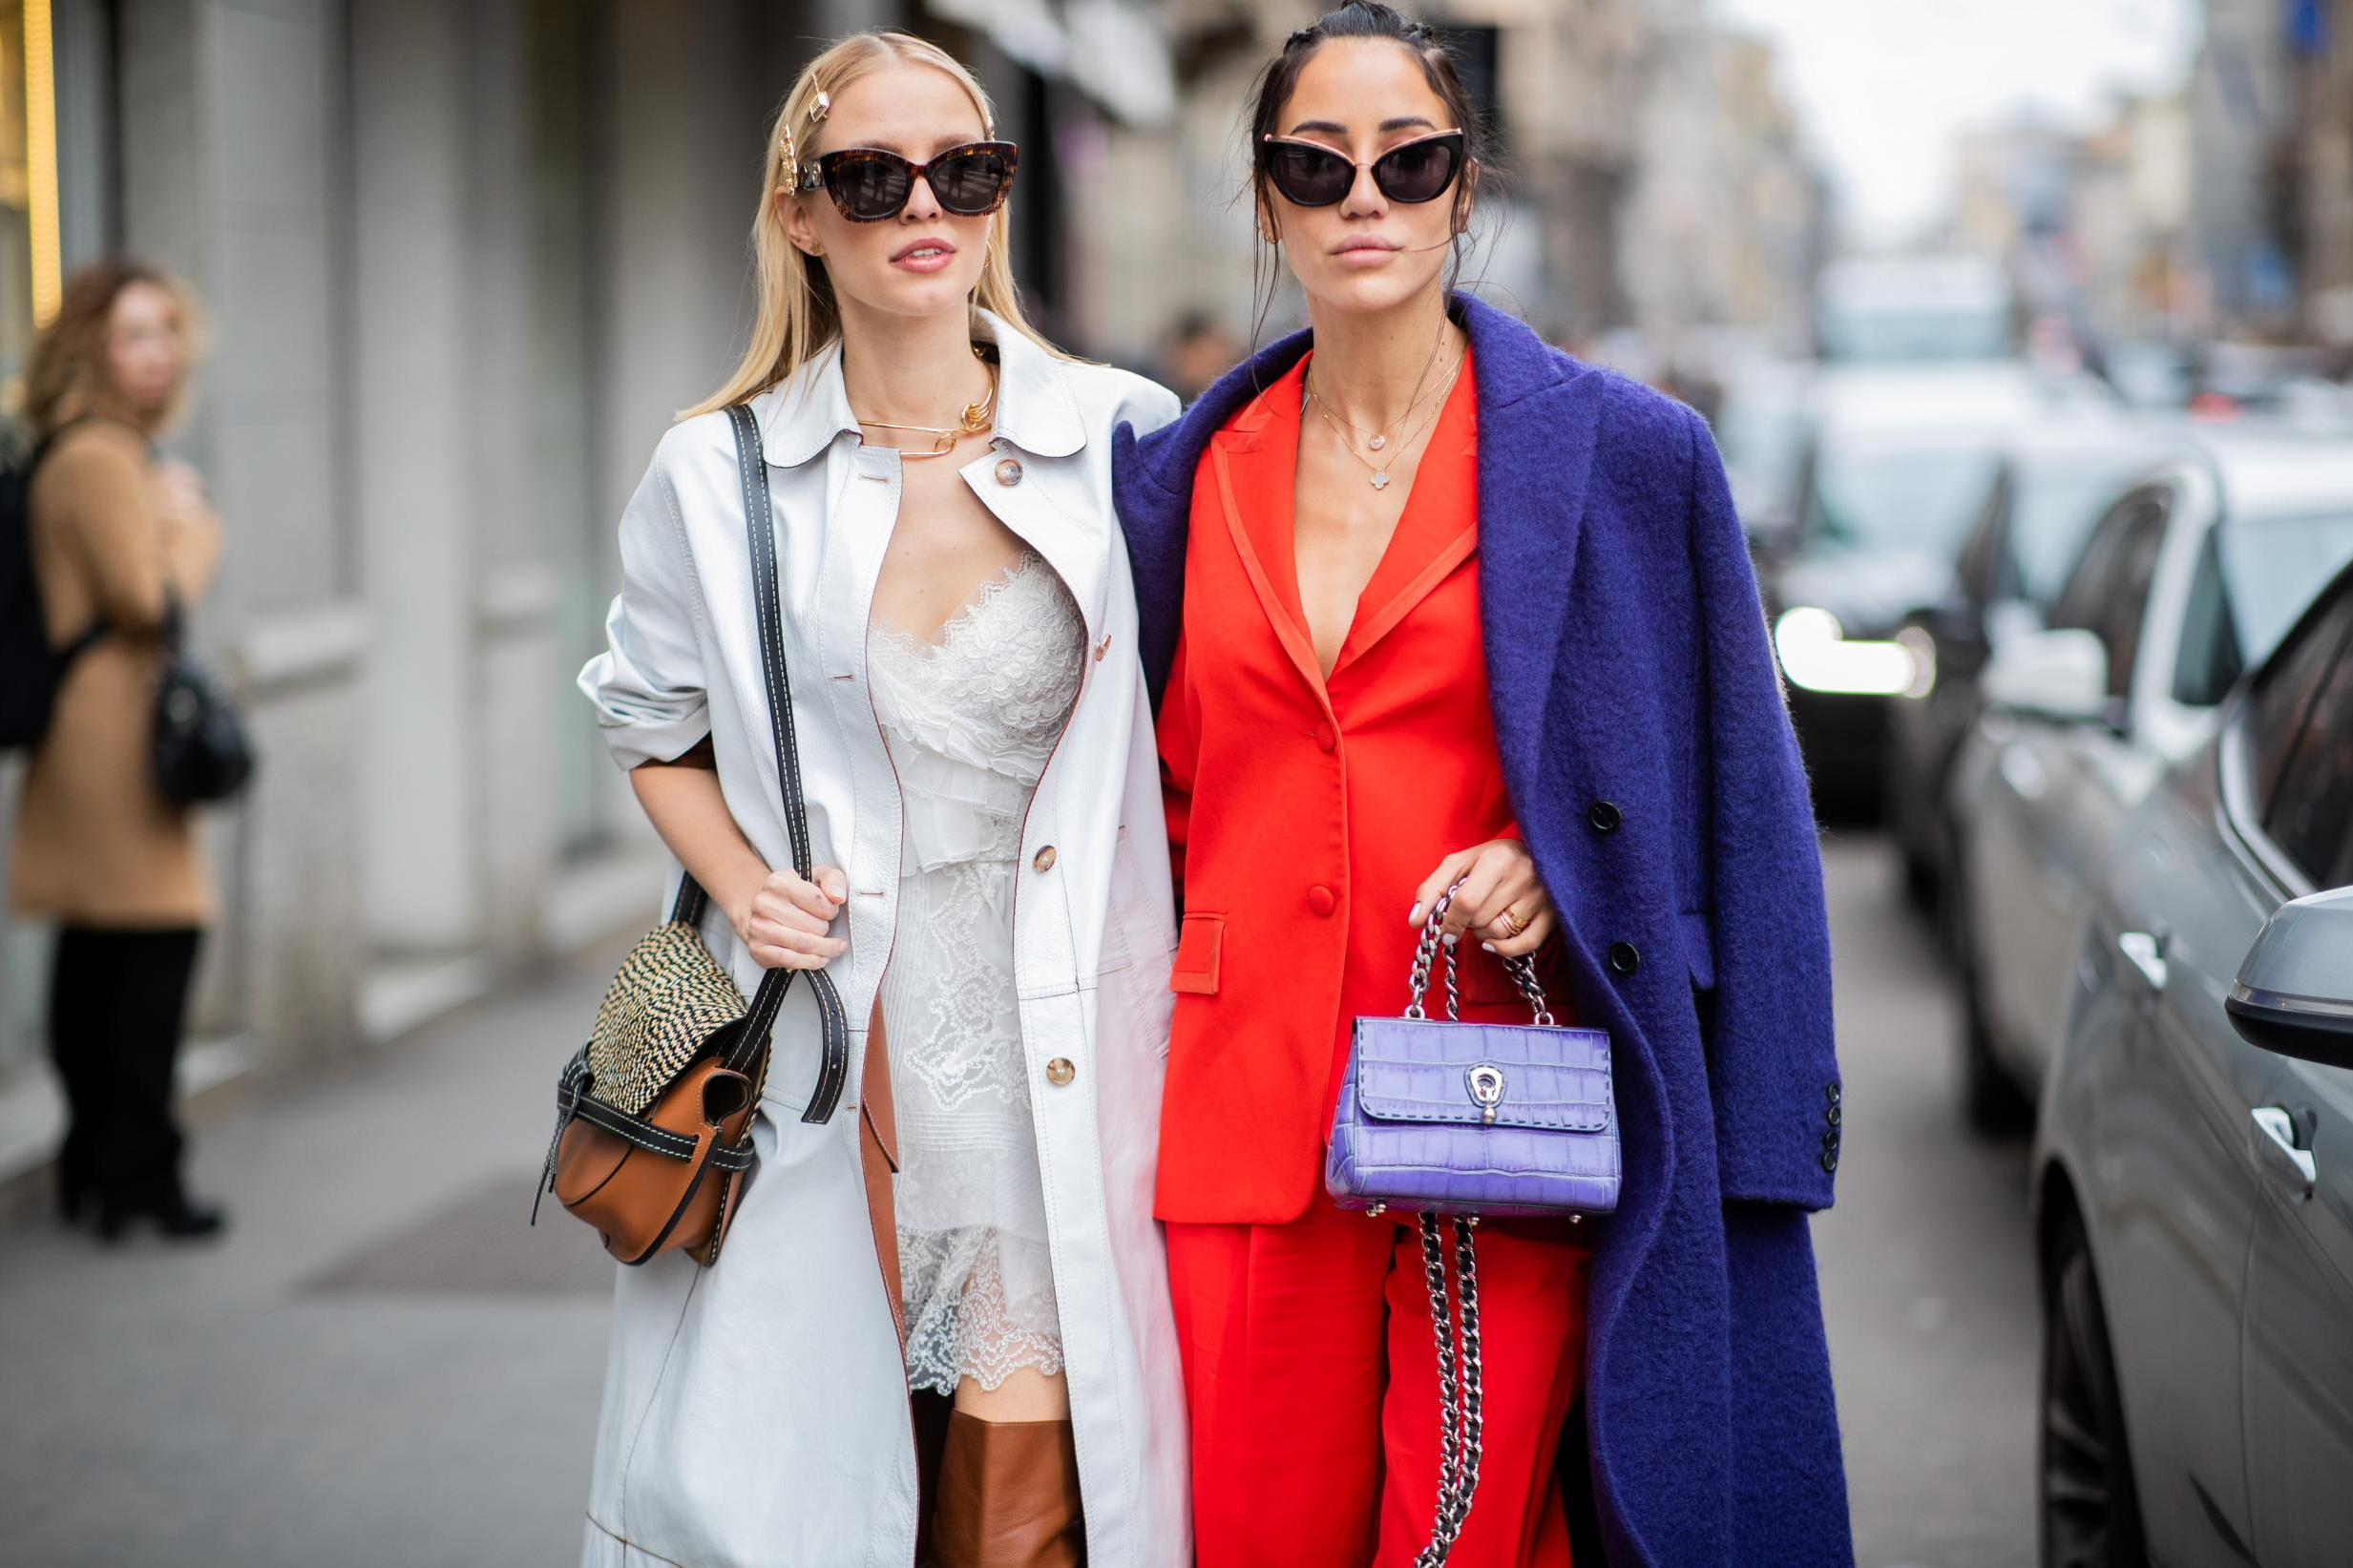 41544c5cf020 Milan Fashion Week: Best street style looks outside Gucci and Prada runway  shows